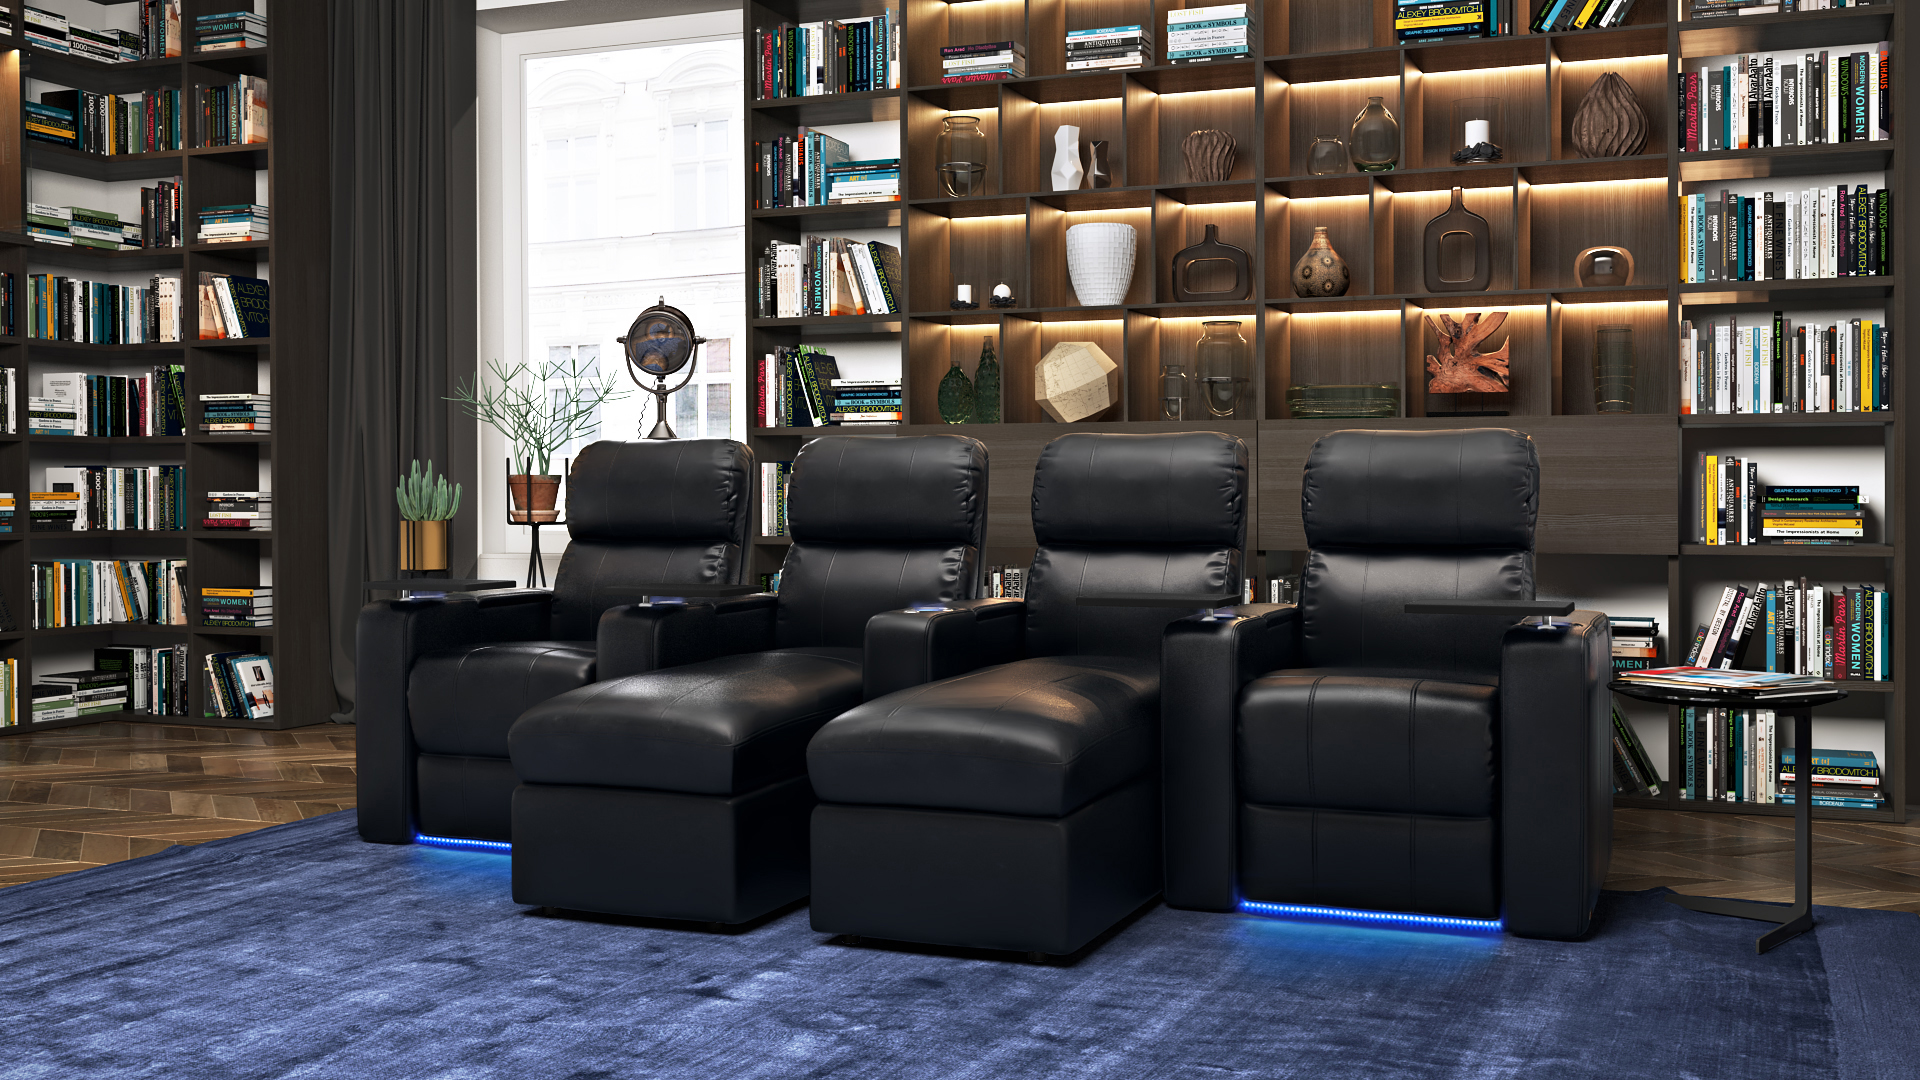 3D Furniture Lifestyle to Showcase the Sofa Design